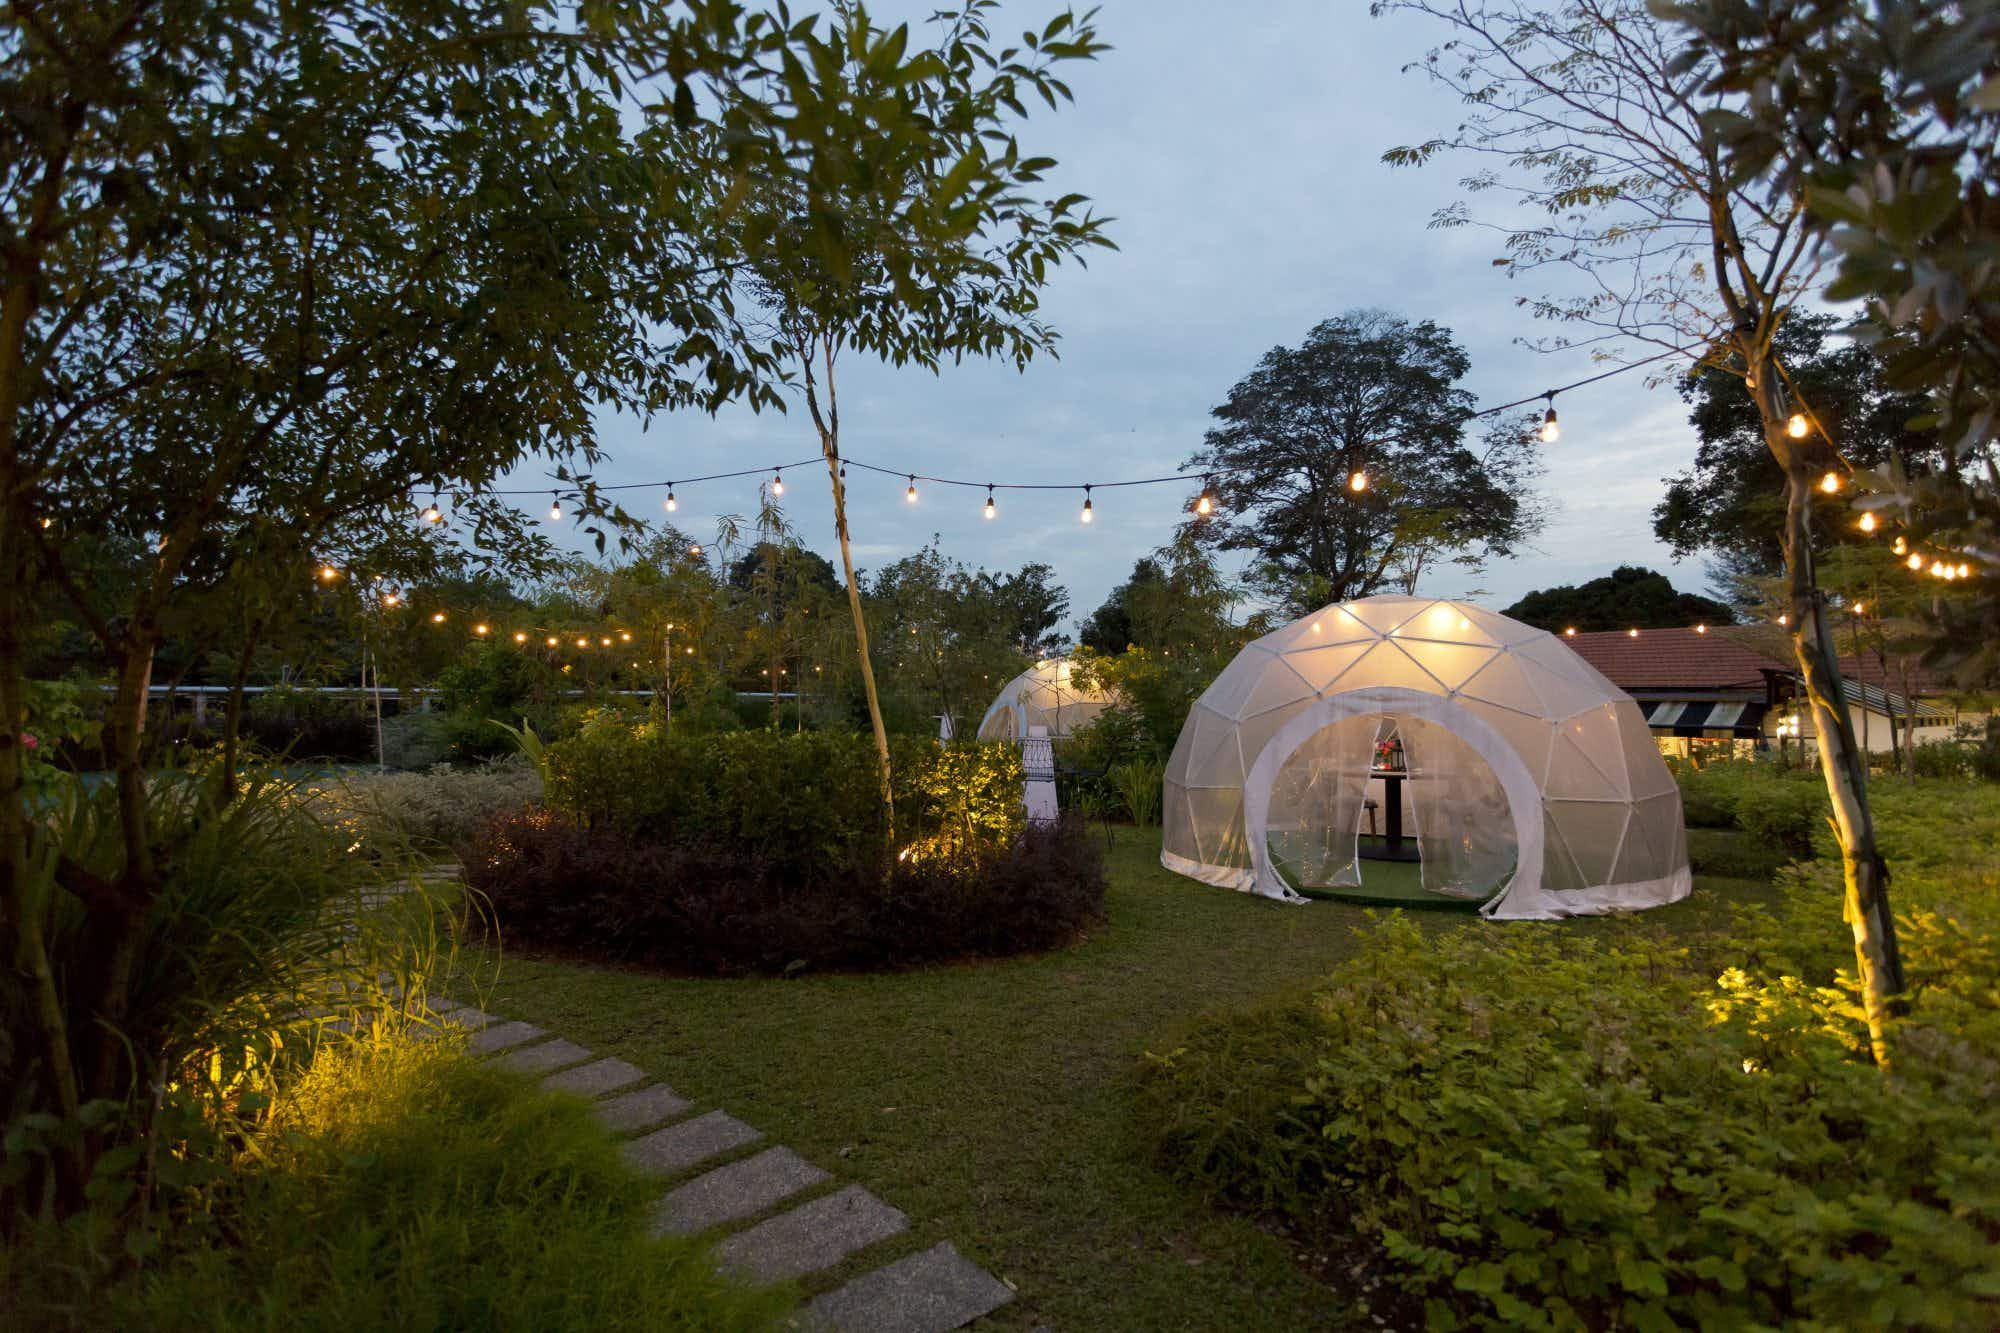 Singapore's new outdoor dining experience is set in an edible garden